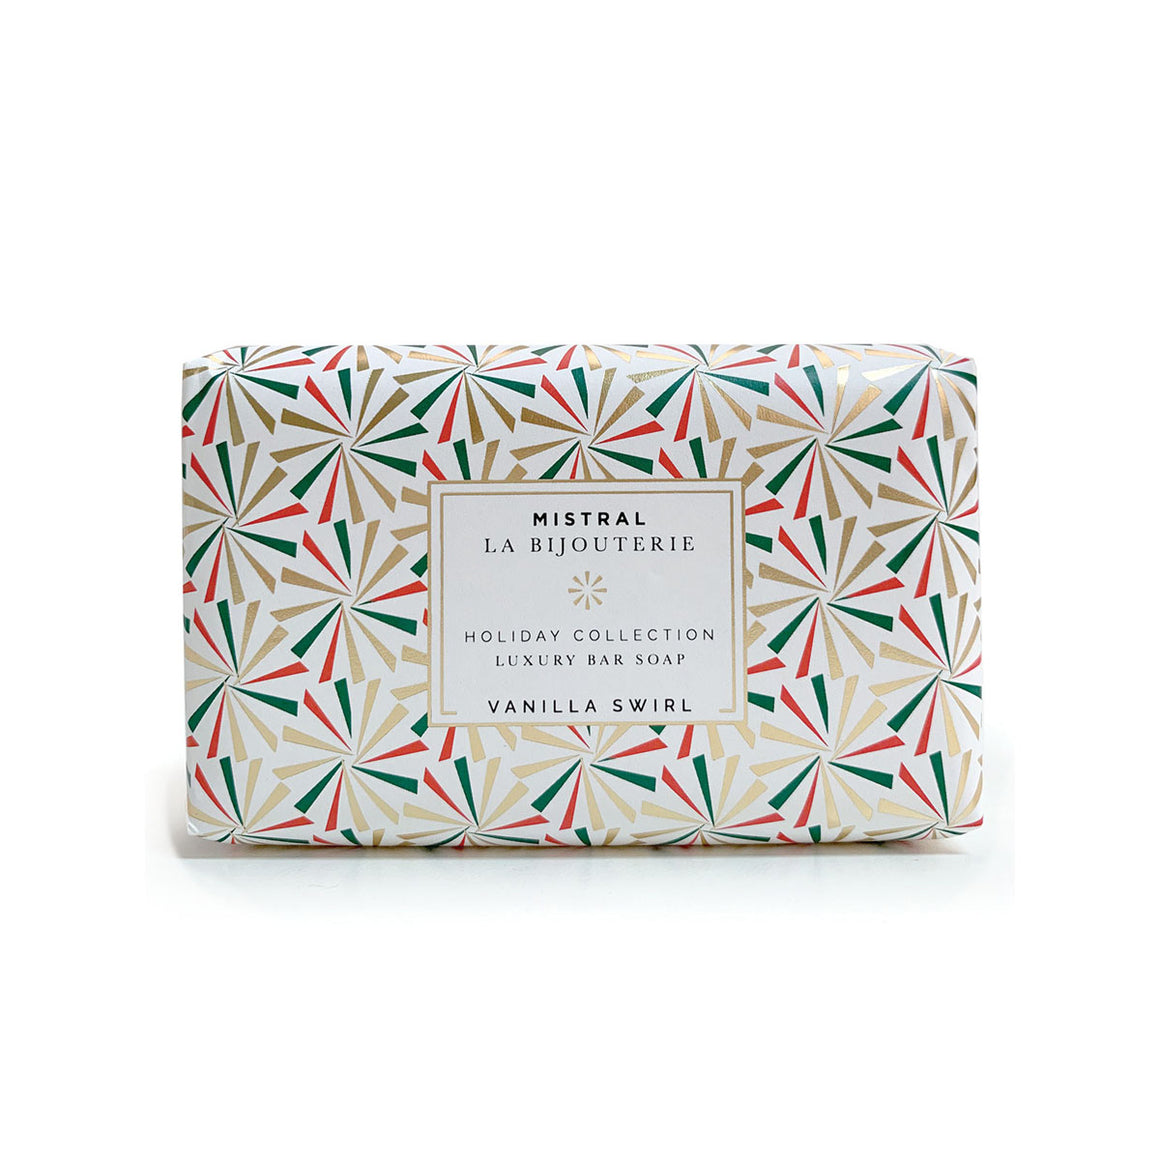 Vanilla Swirl Holiday Jewels 100g Bar Soap